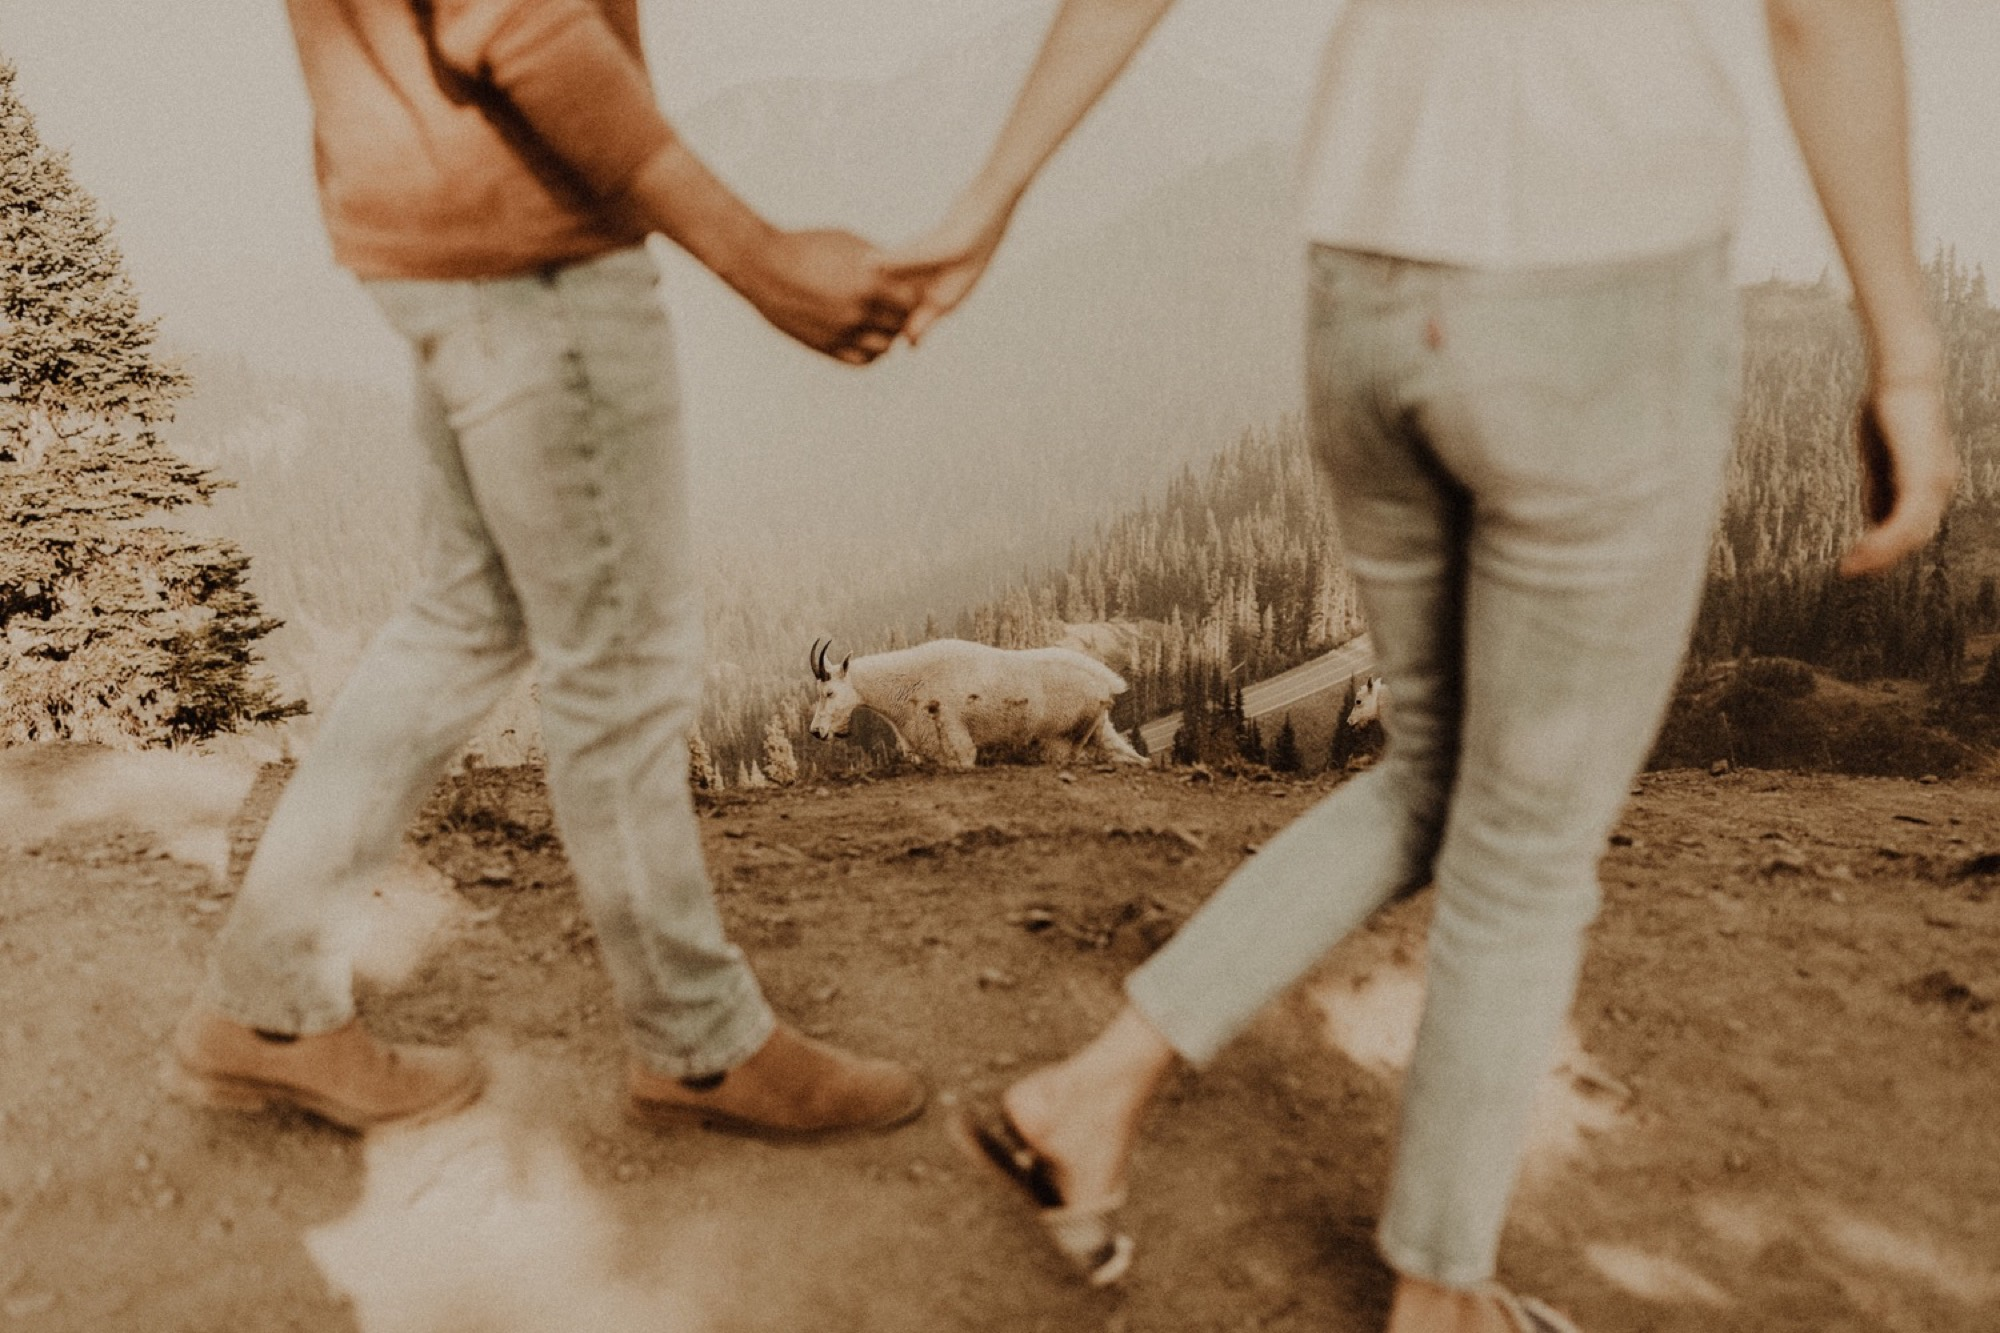 goats interrupt engagement shoot on hurricane ridge during engagement shoot